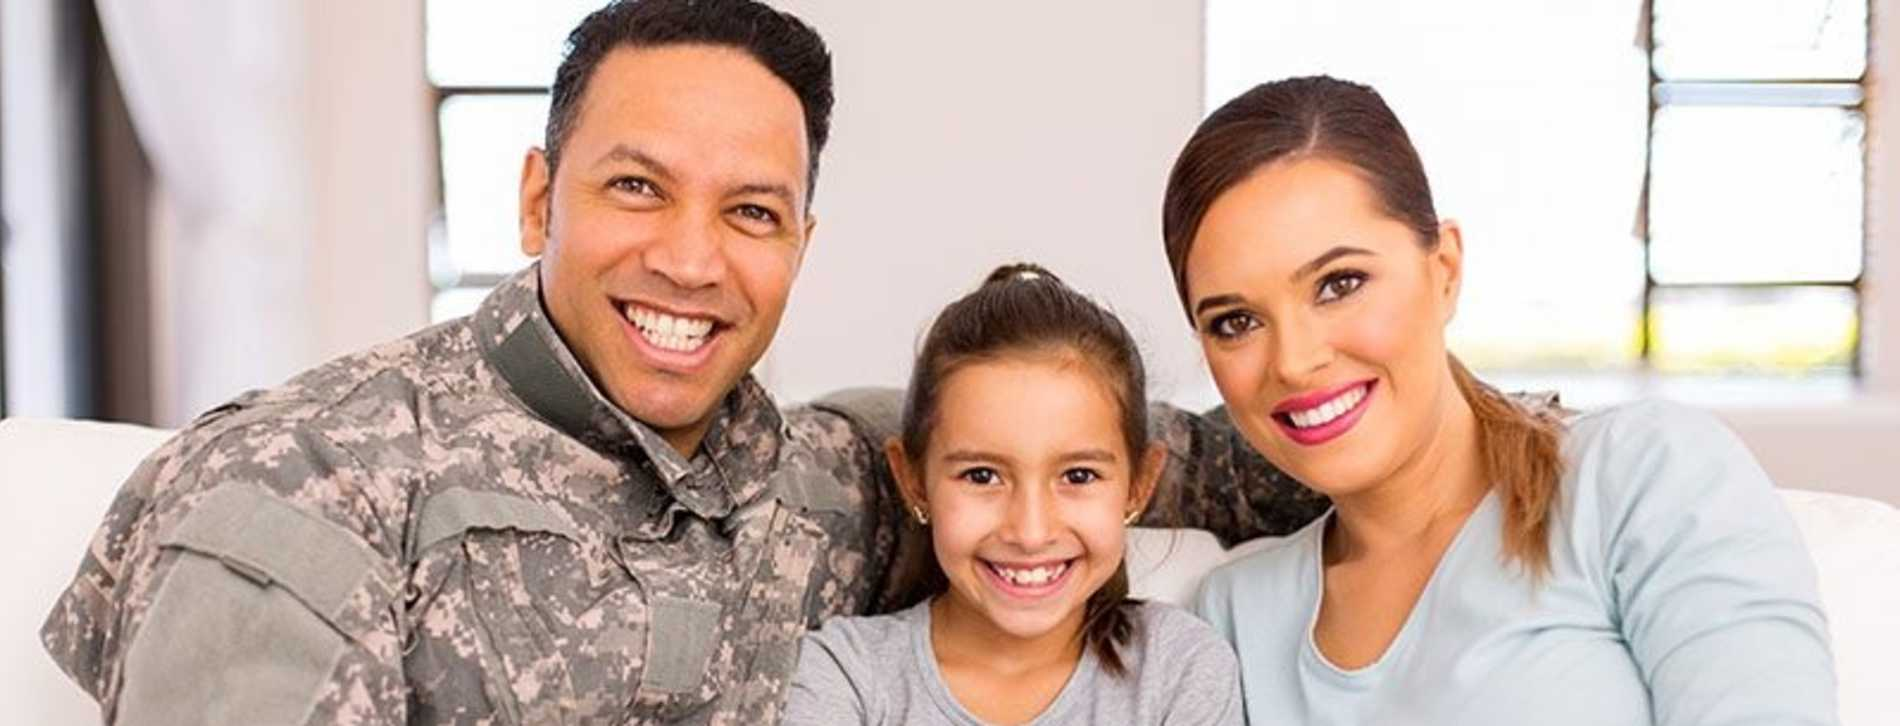 Best Western Military Discount